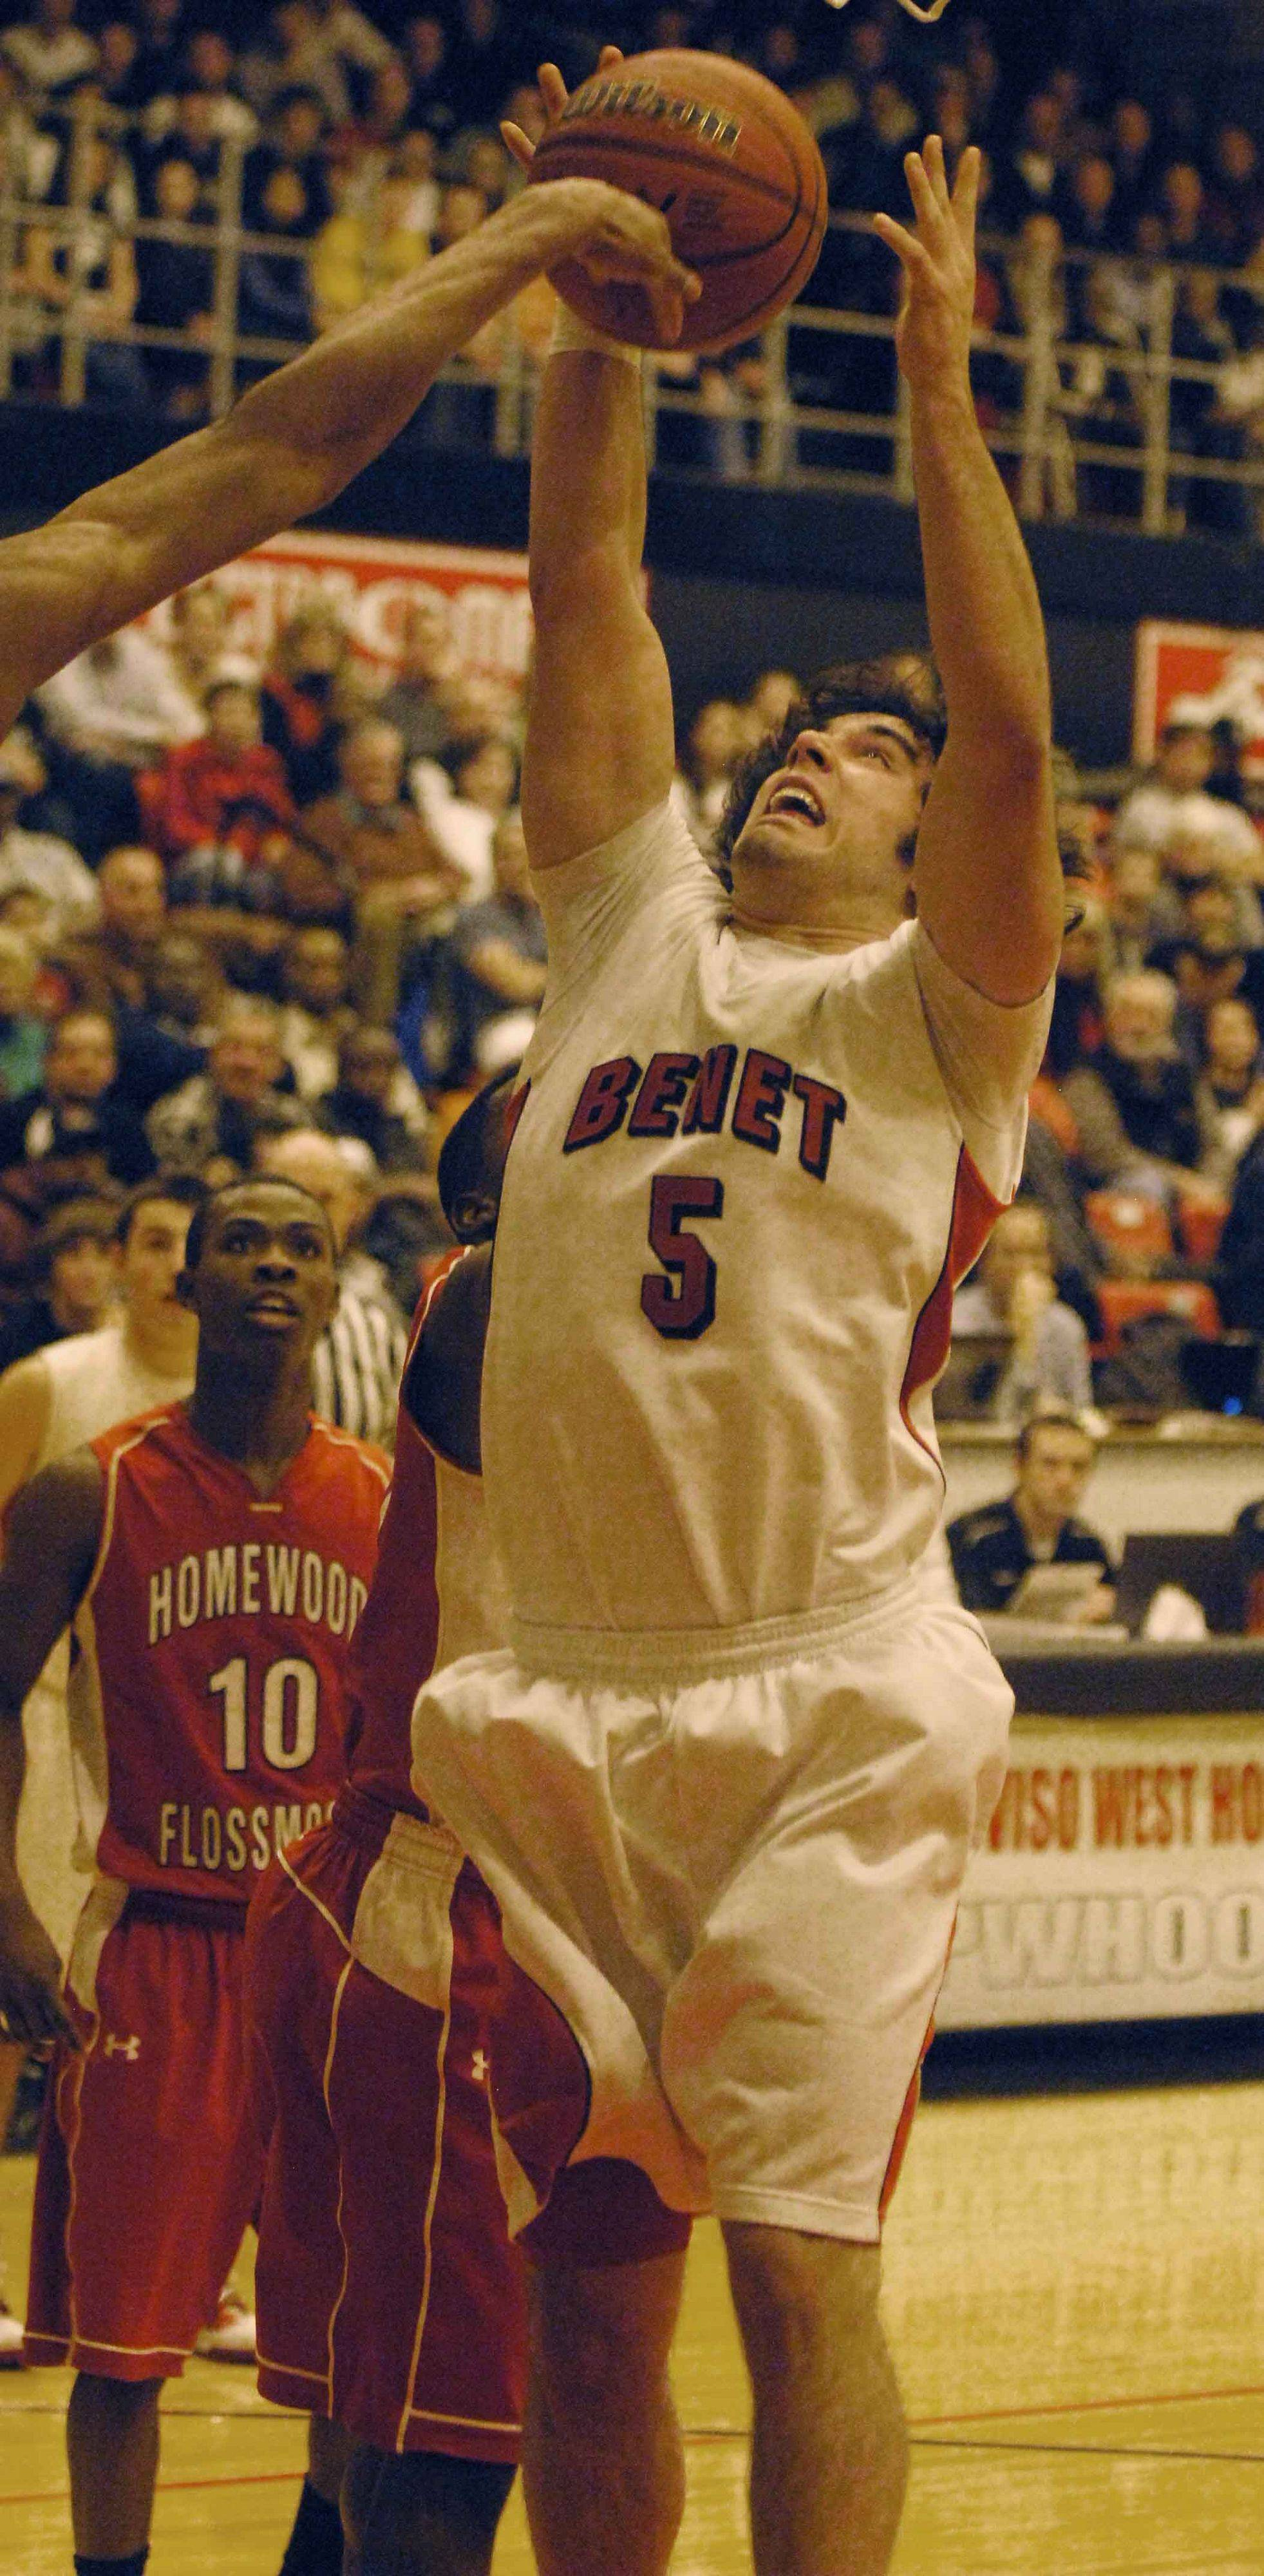 Pat Boyle of Benet goes for a rebound during the Benet vs. Homewood-Flossmoor game at Proviso West High School in Hillside Thursday.